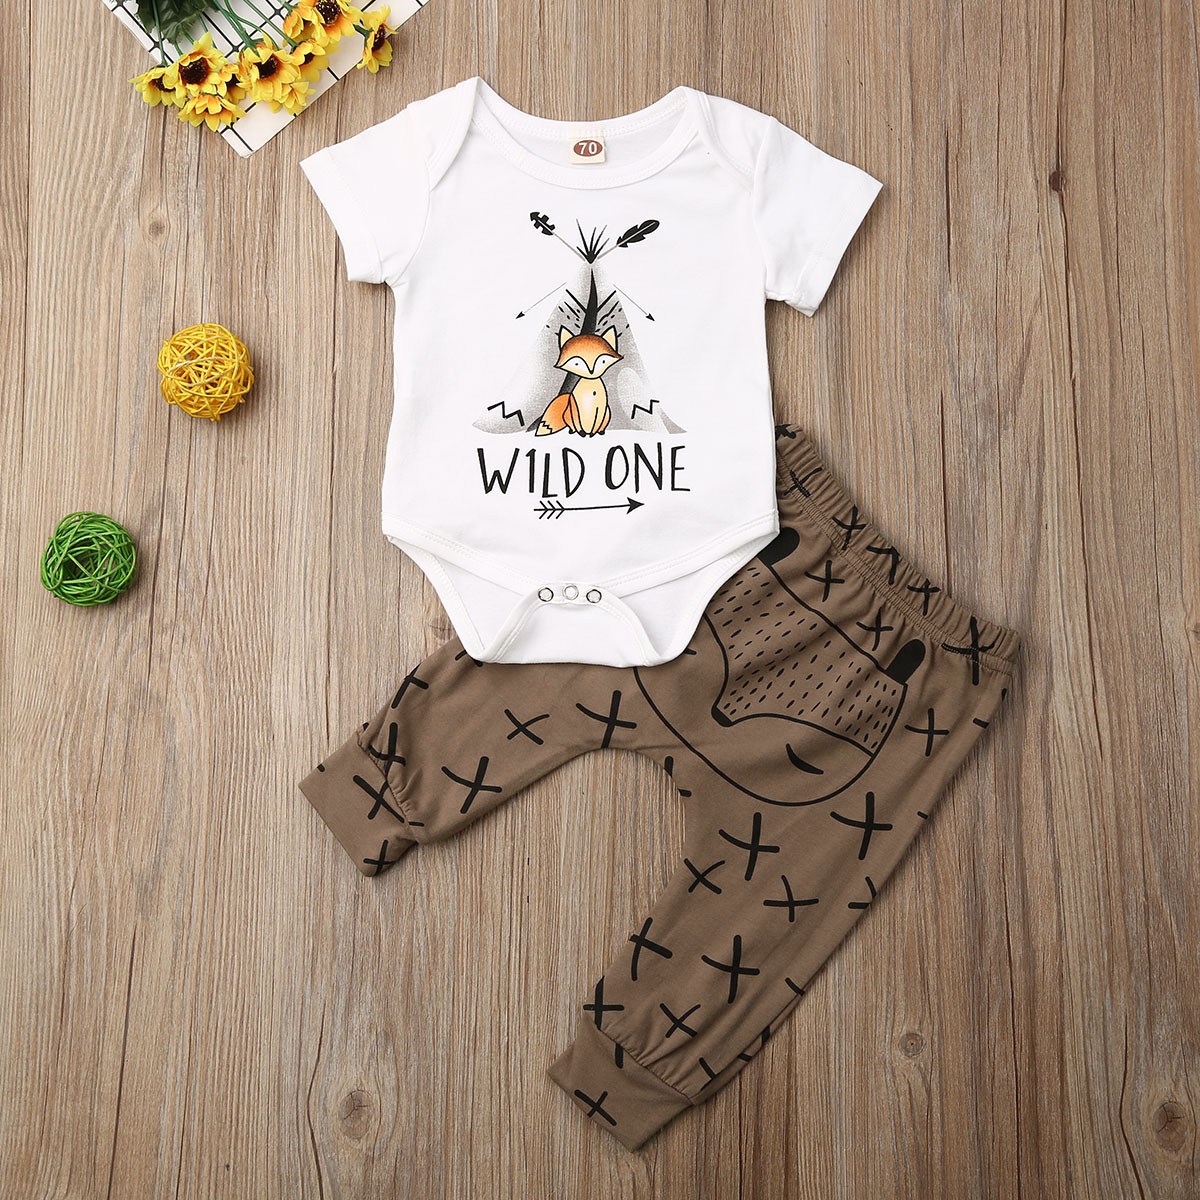 Pudcoco Newborn Baby Boy Girl Clothes Cartoon Animals Print Short Sleeve Romper Tops Long Pants 2Pcs Outfits Cotton Clothes Set